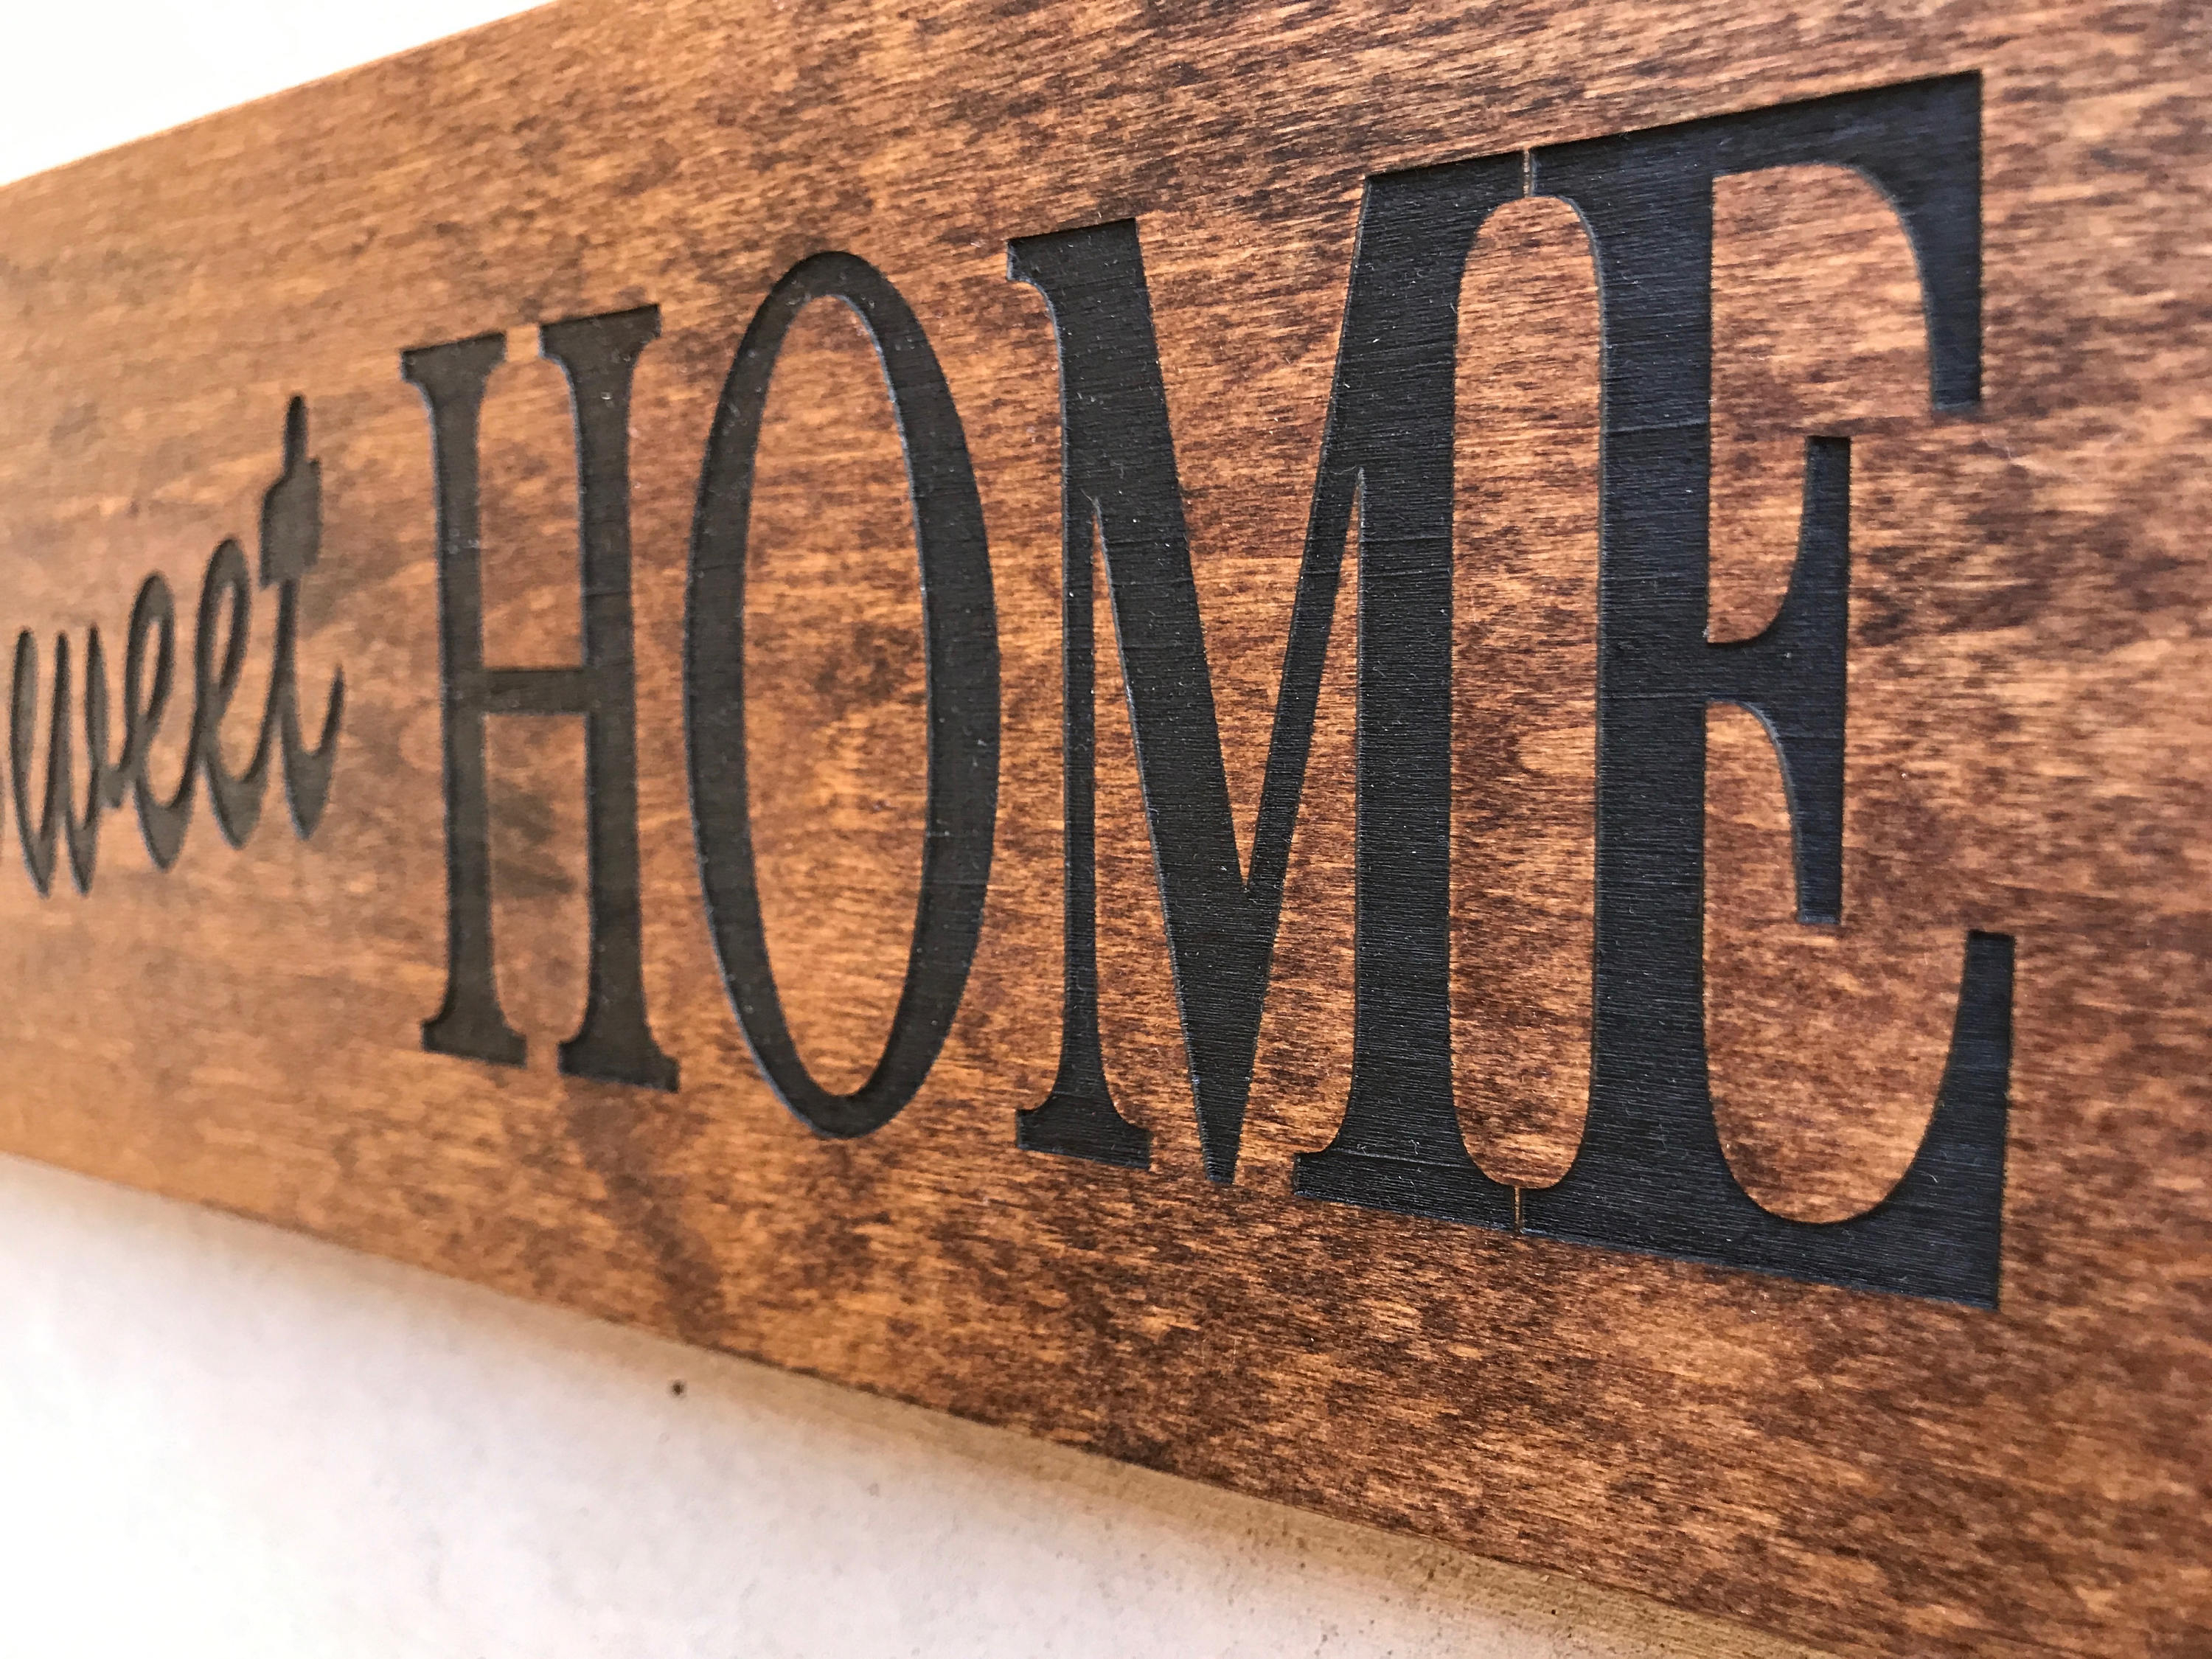 Engraved Wood Home Sign / Inspirational Sign / Custom Wall Decor With Best And Newest Laser Engraved Home Sweet Home Wall Decor (View 2 of 20)